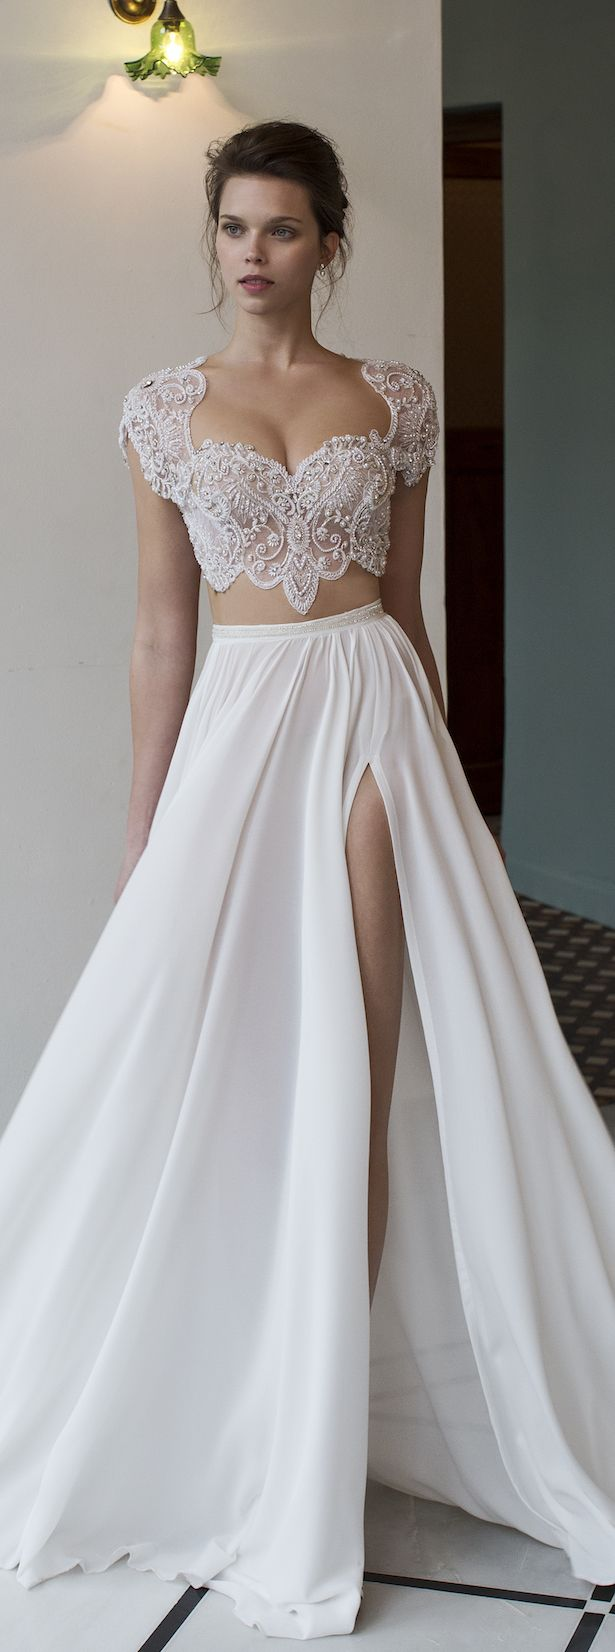 Sexy two-piece bridal gown with lace top | Bridal Trends: Two- Piece Wedding Dresses via @BelleMagazine #vestidodenovia | #trajesdenovio | vestidos de novia para gorditas | vestidos de novia cortos http://amzn.to/29aGZWo